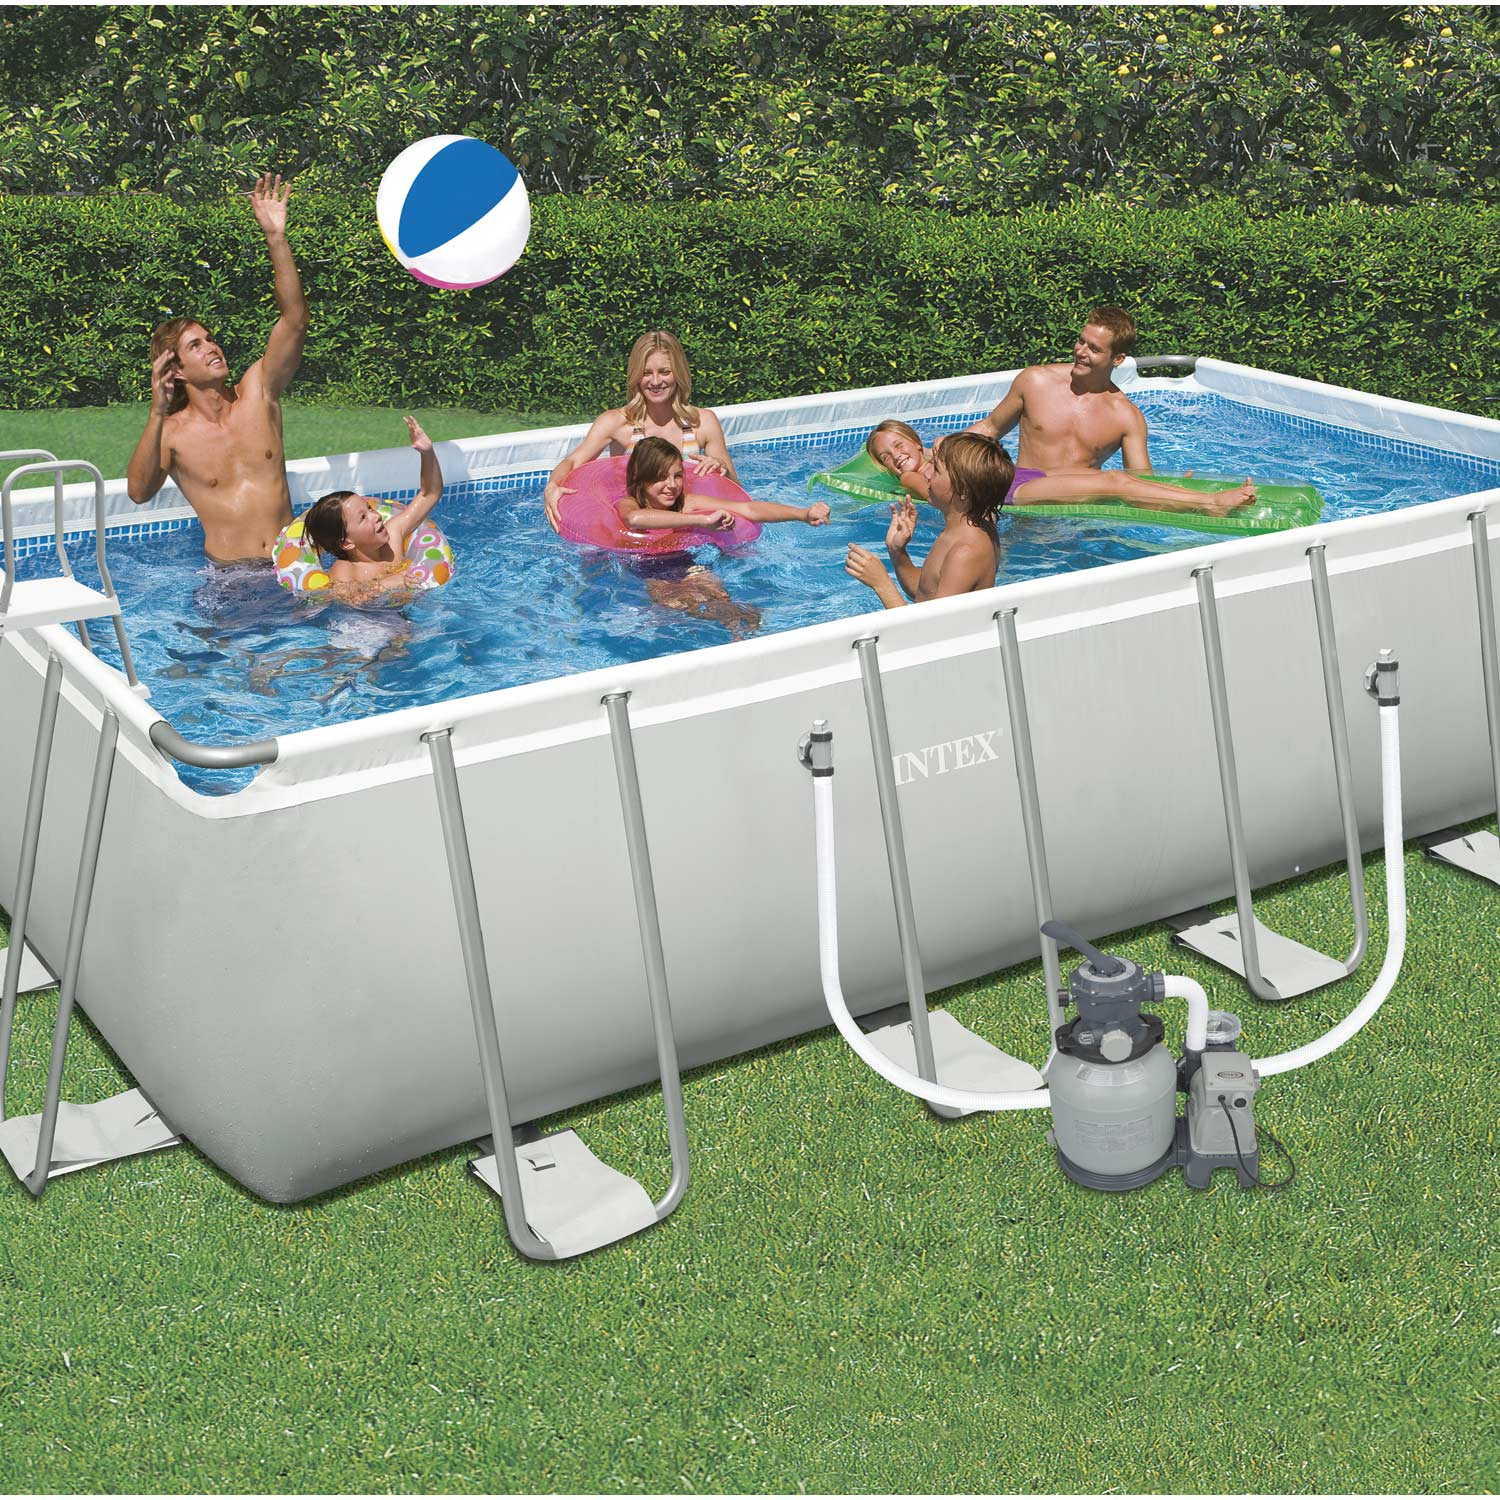 Piscine hors sol autoportante tubulaire ultra silver intex for Piscine hors sol perpignan